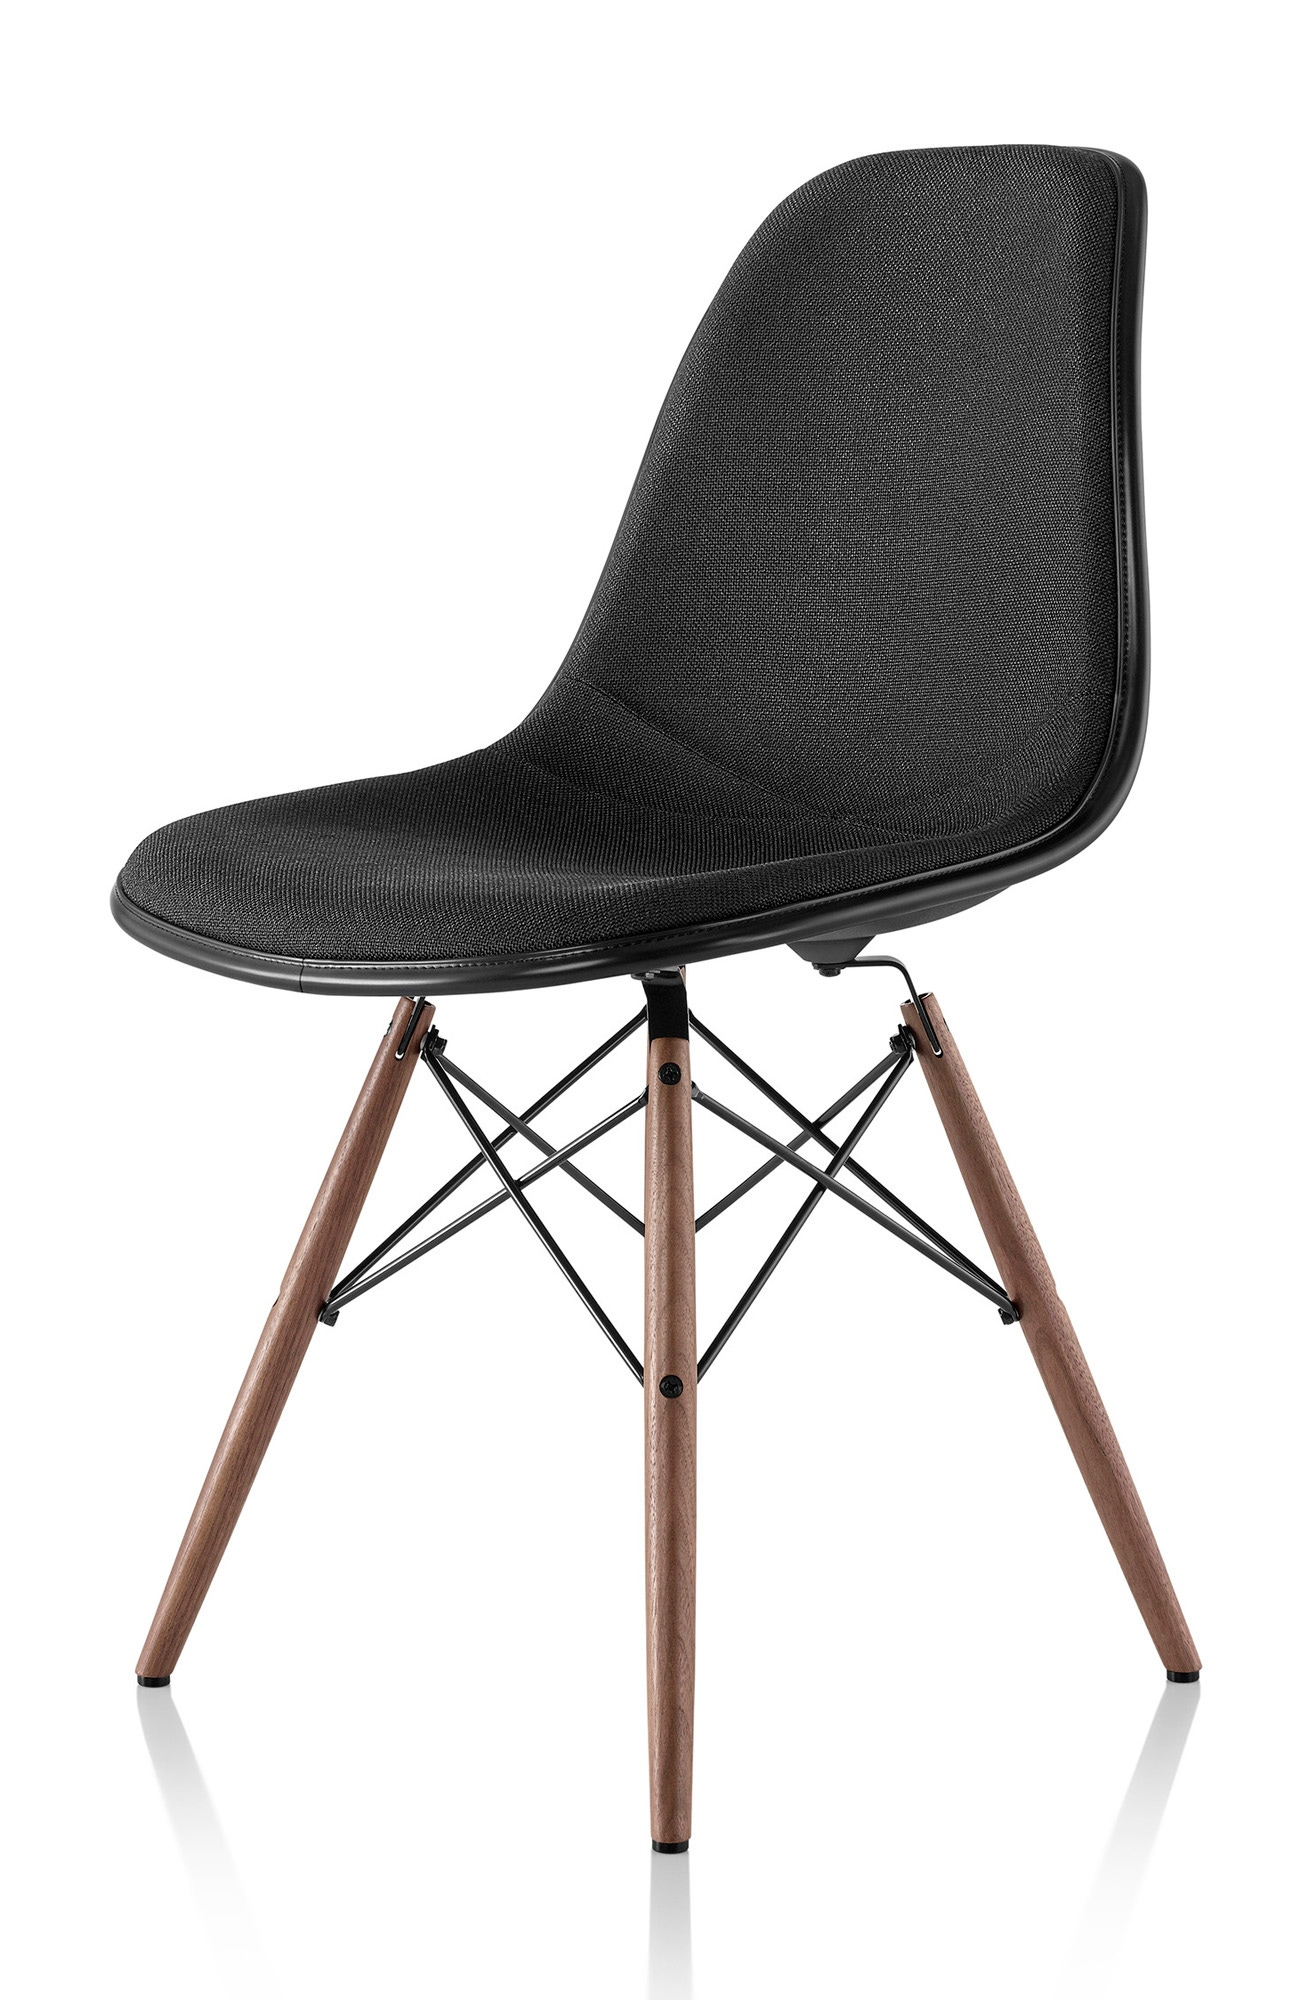 herman miller eames molded plastic side chair upholstered shell gr shop canada. Black Bedroom Furniture Sets. Home Design Ideas